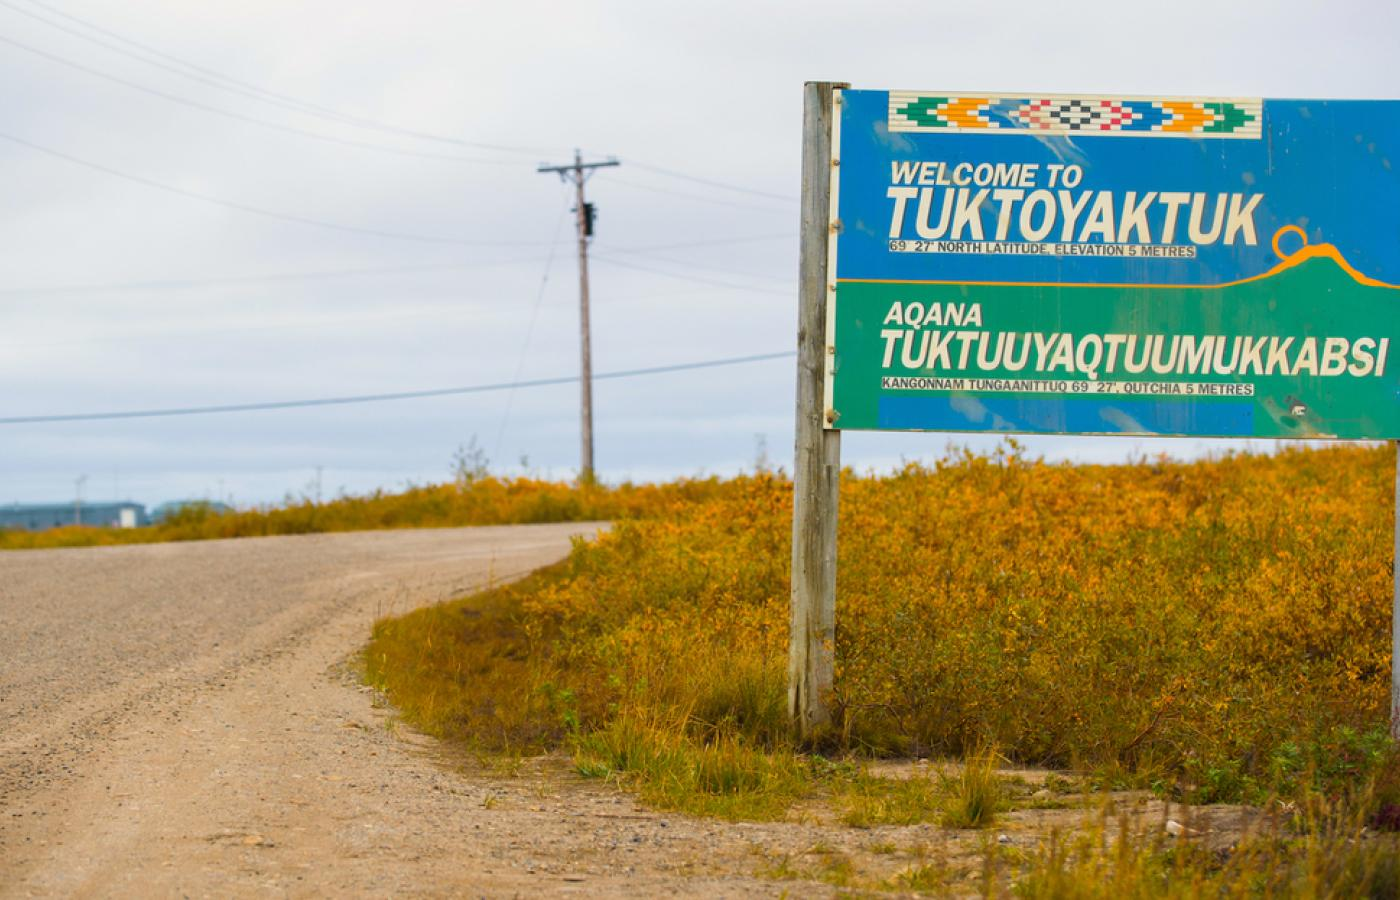 Tuktoyaktuk welcome sign